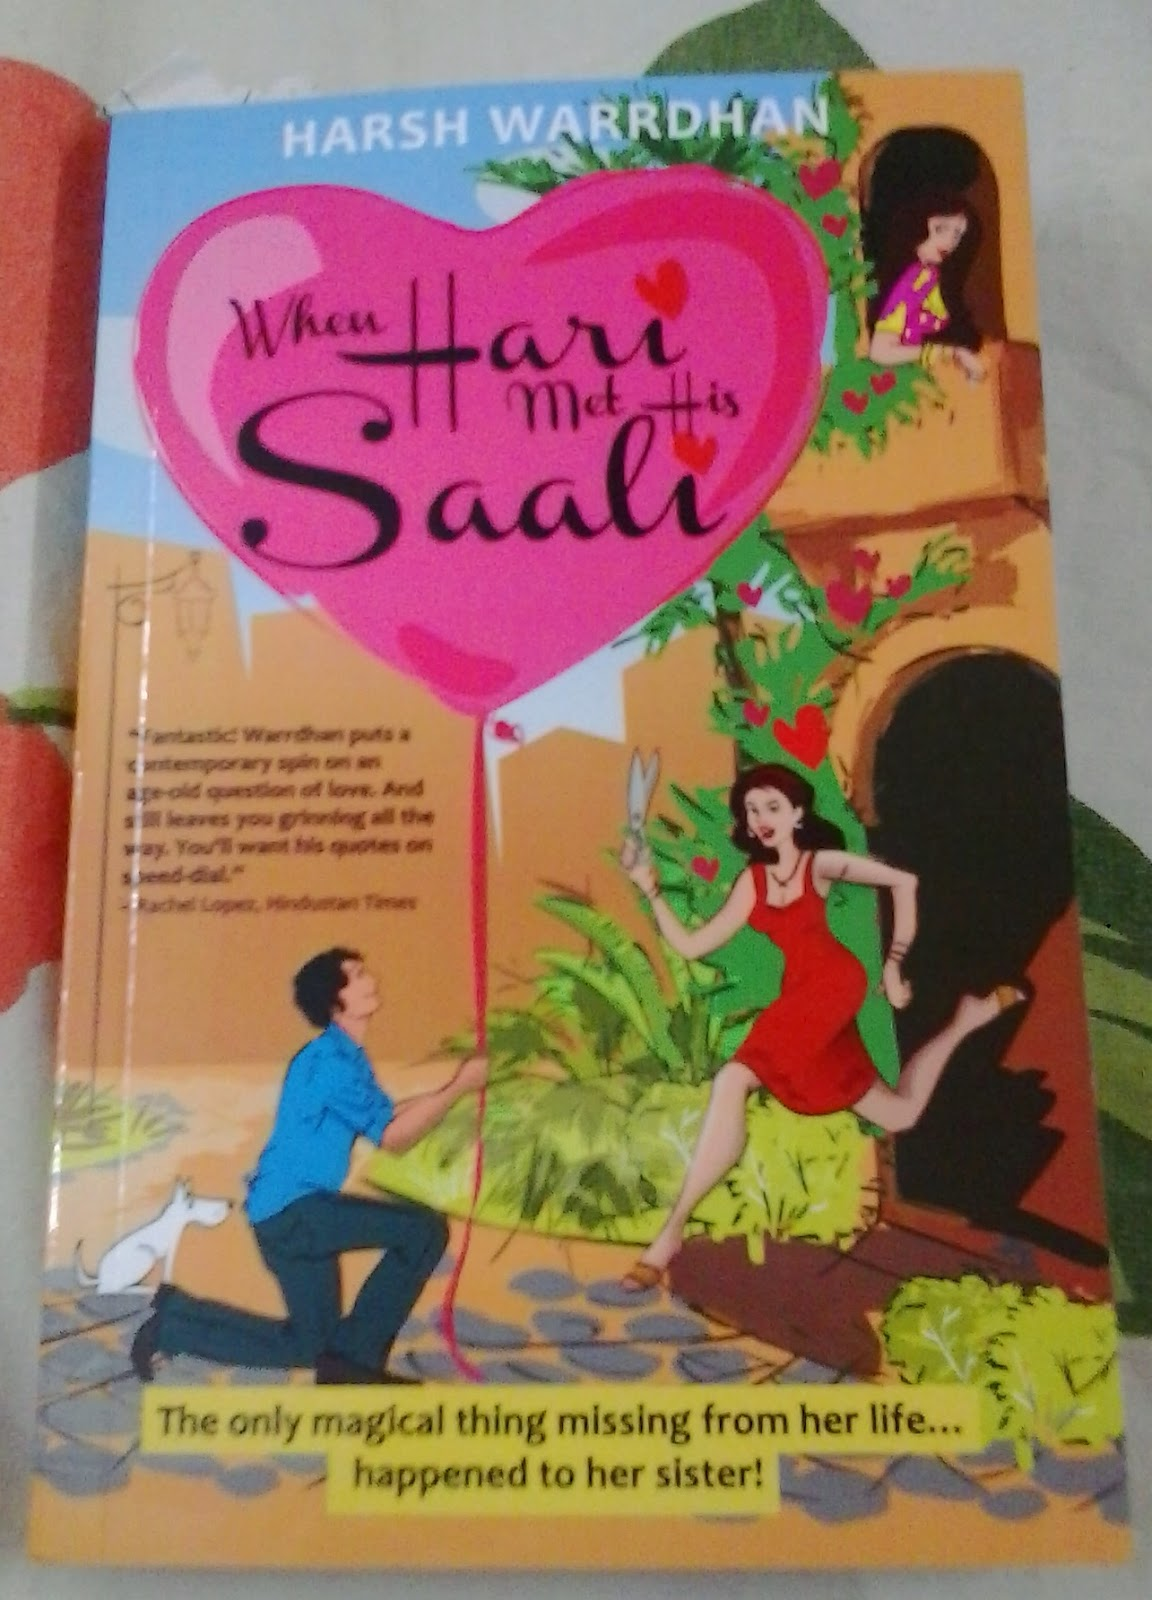 When Hari Met His Saali